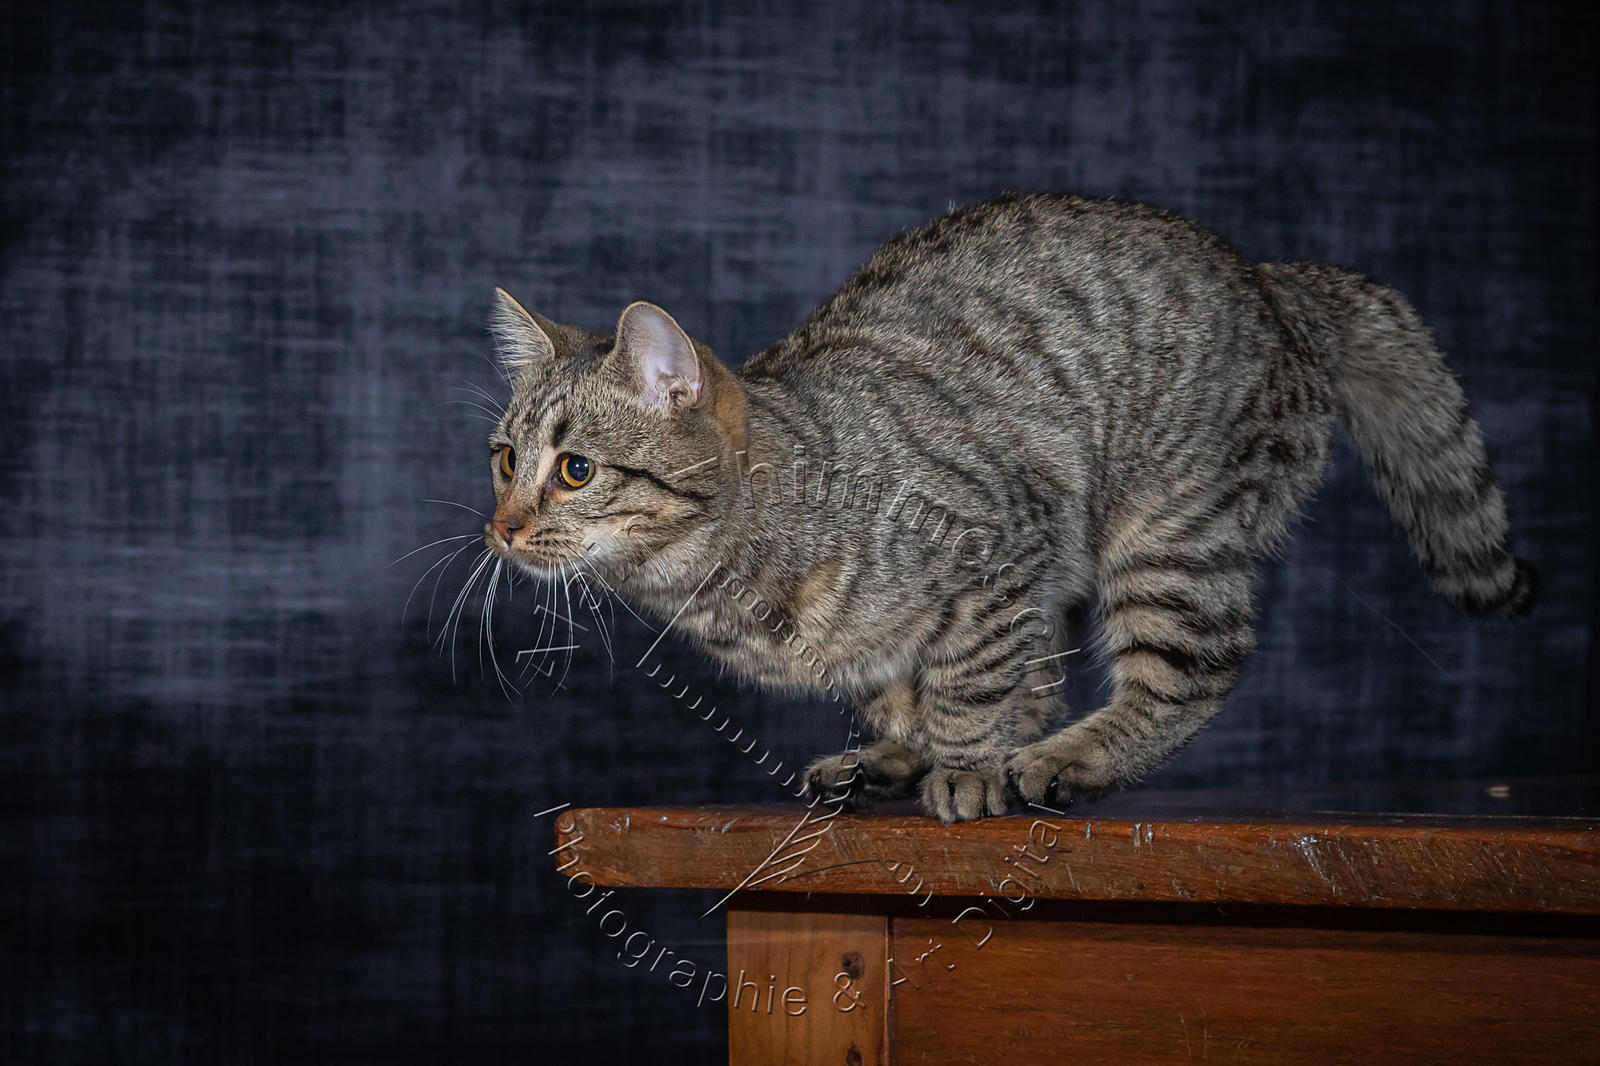 Photographie-Alain-Thimmesch-Chat-1098